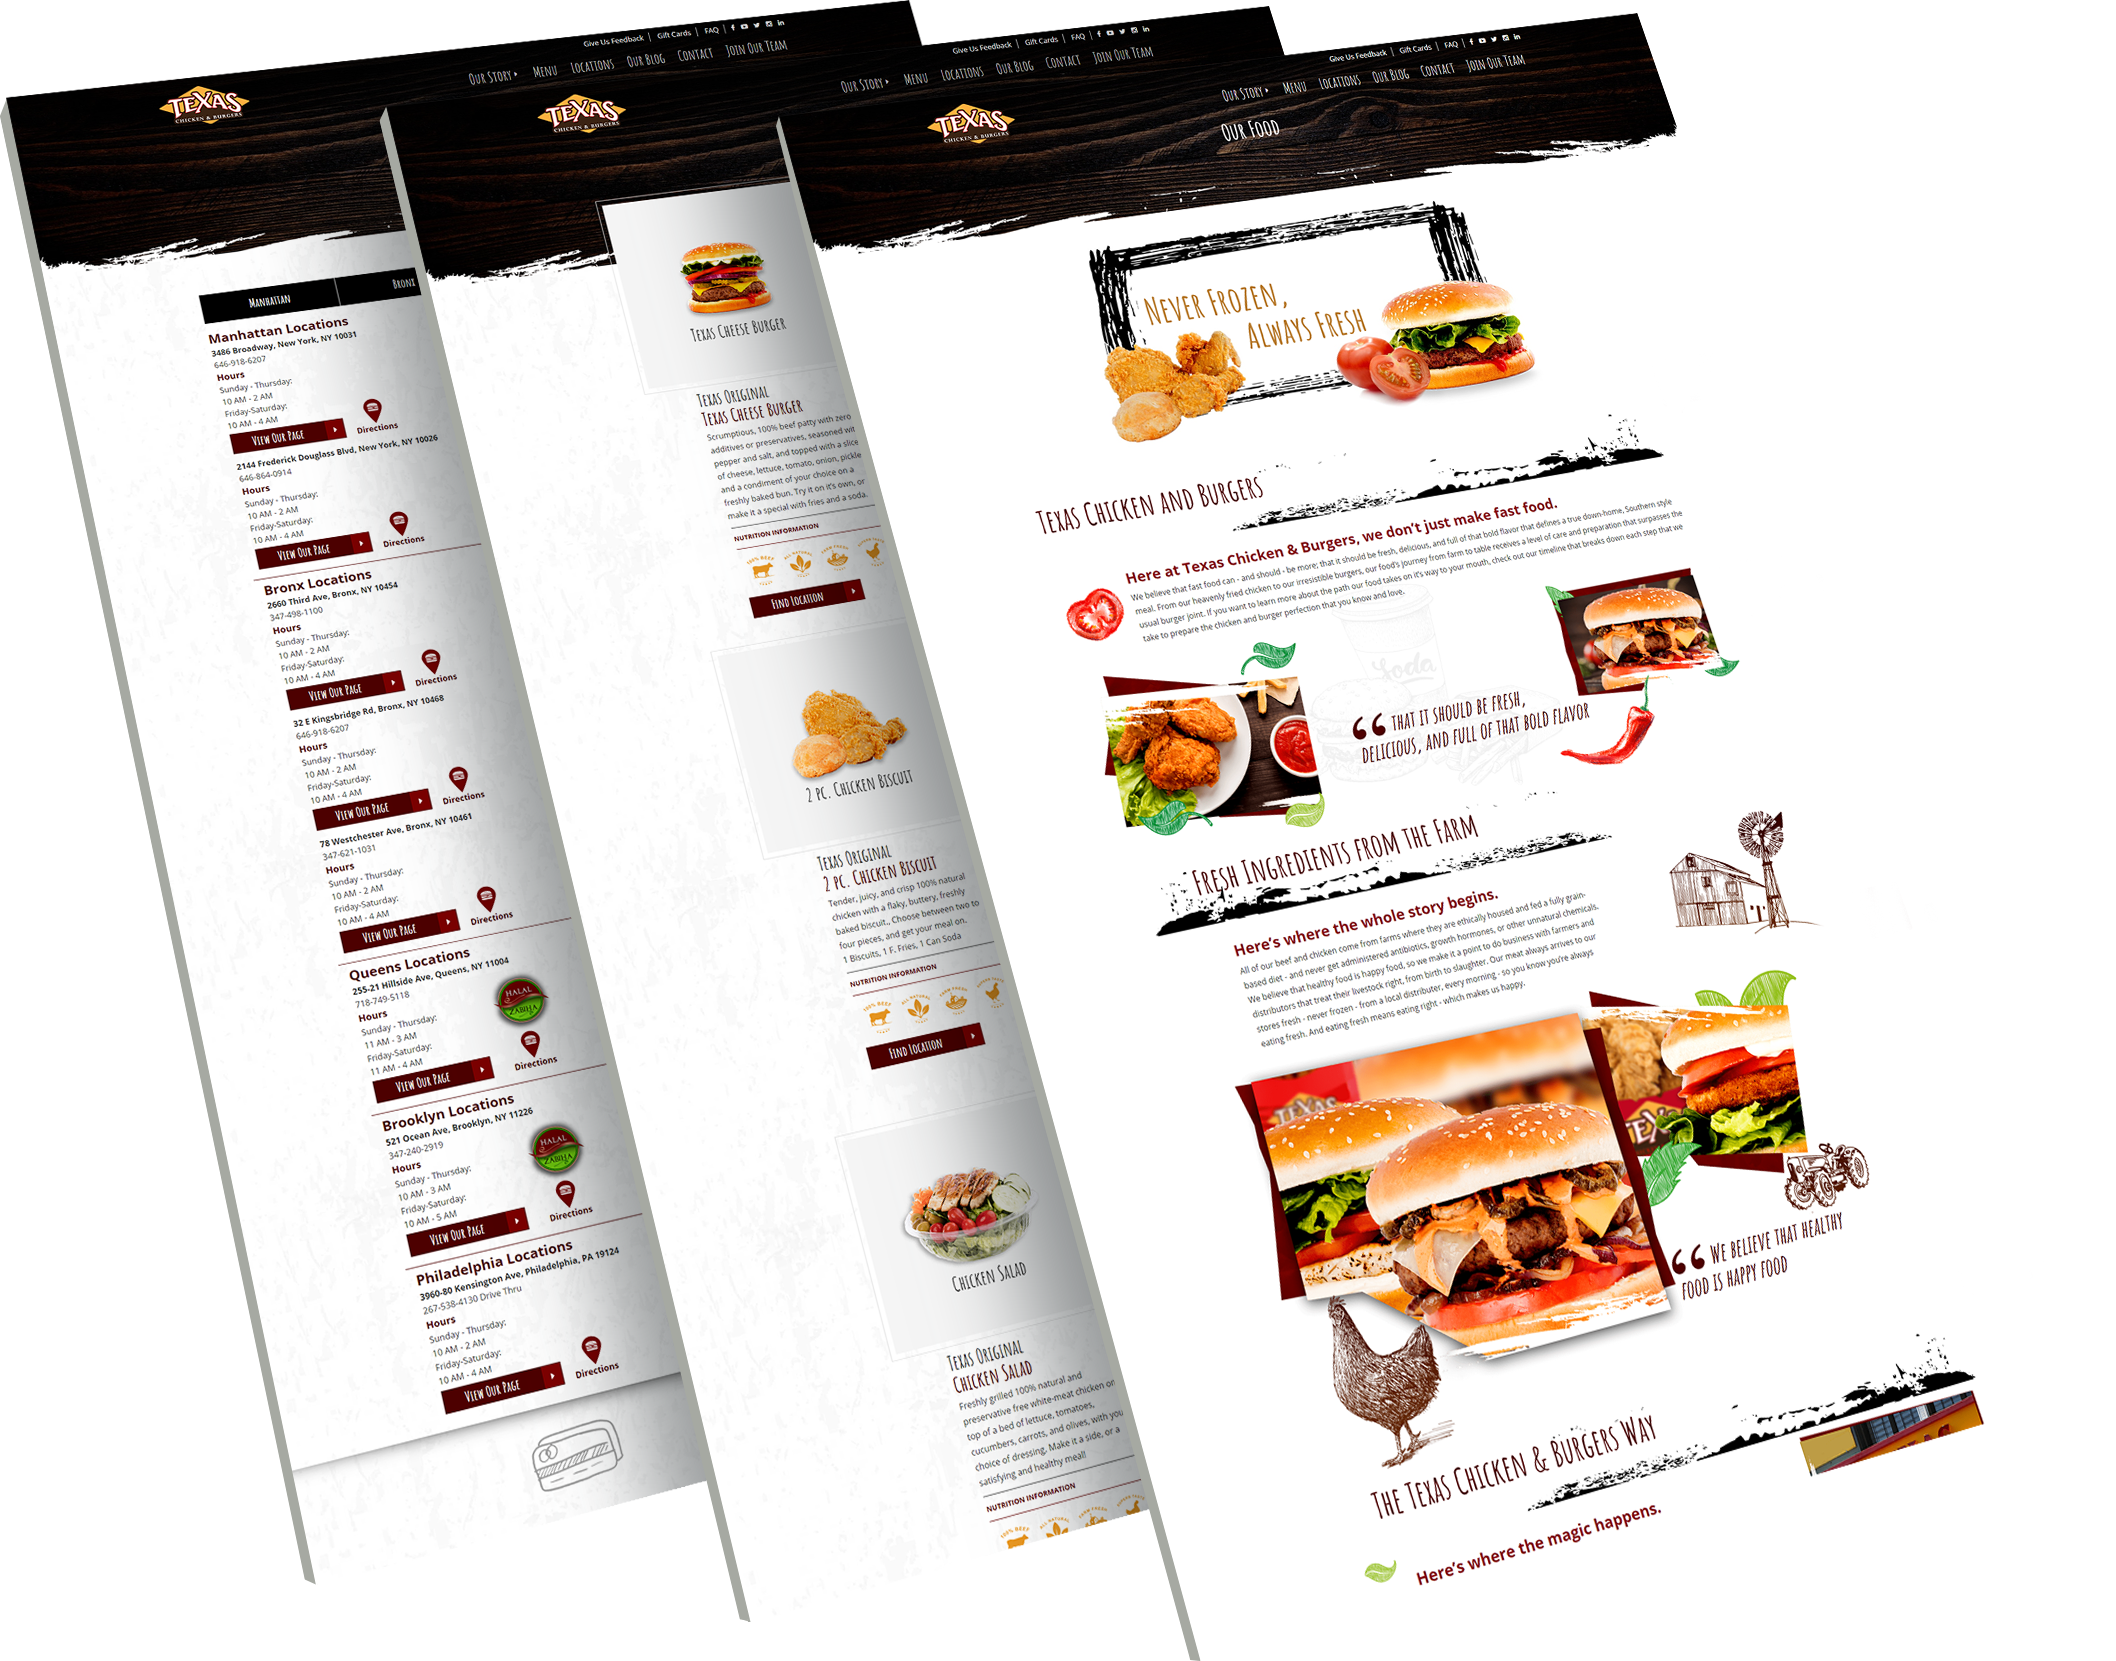 Texas Chicken And Burgers web view